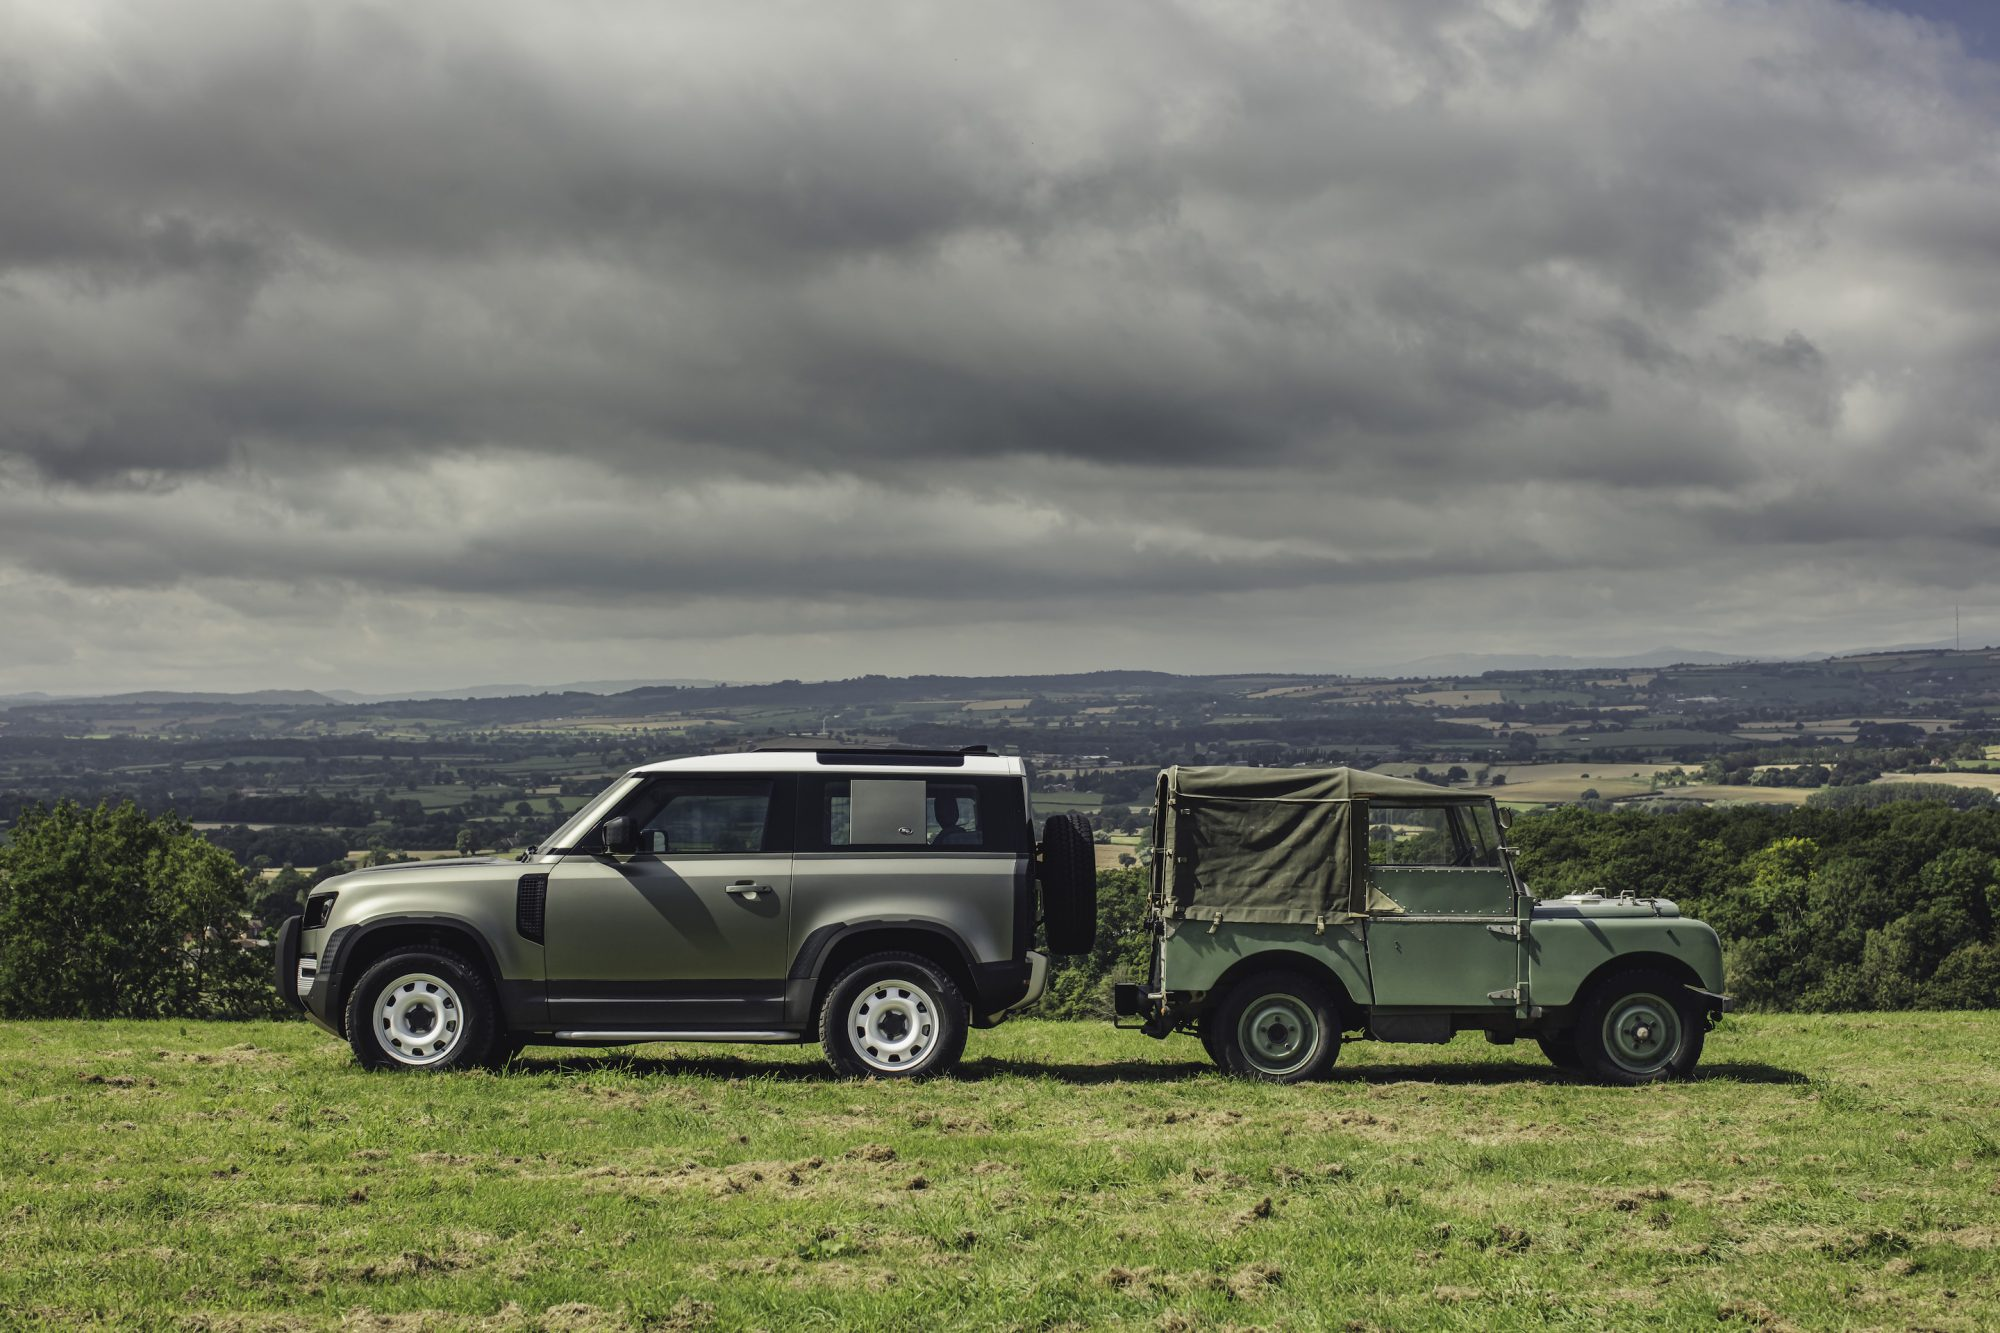 Land-Rover-Defender-2019-Rust-and-Glory-13